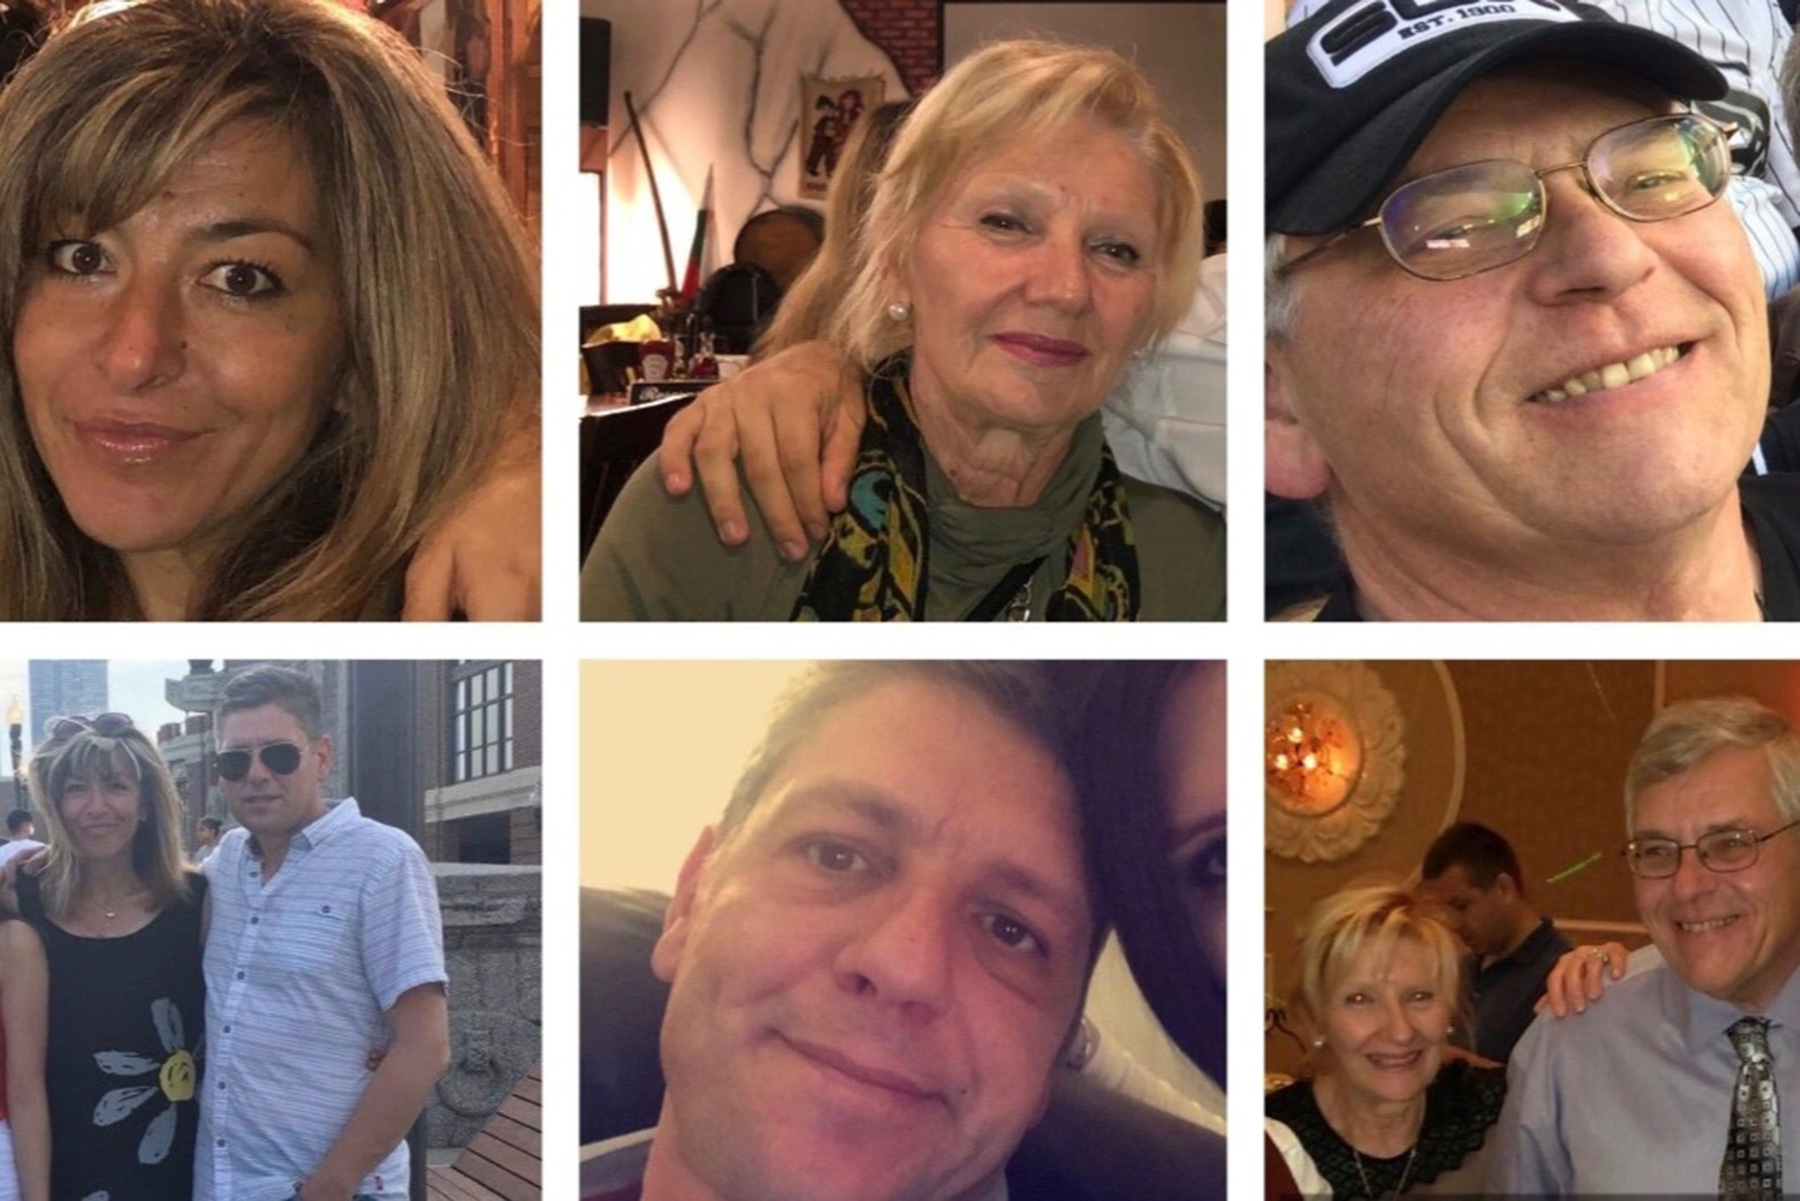 Tzveti, Ivo, Iskra, and David - Victims of Chicago Shooting, October 12, 2019